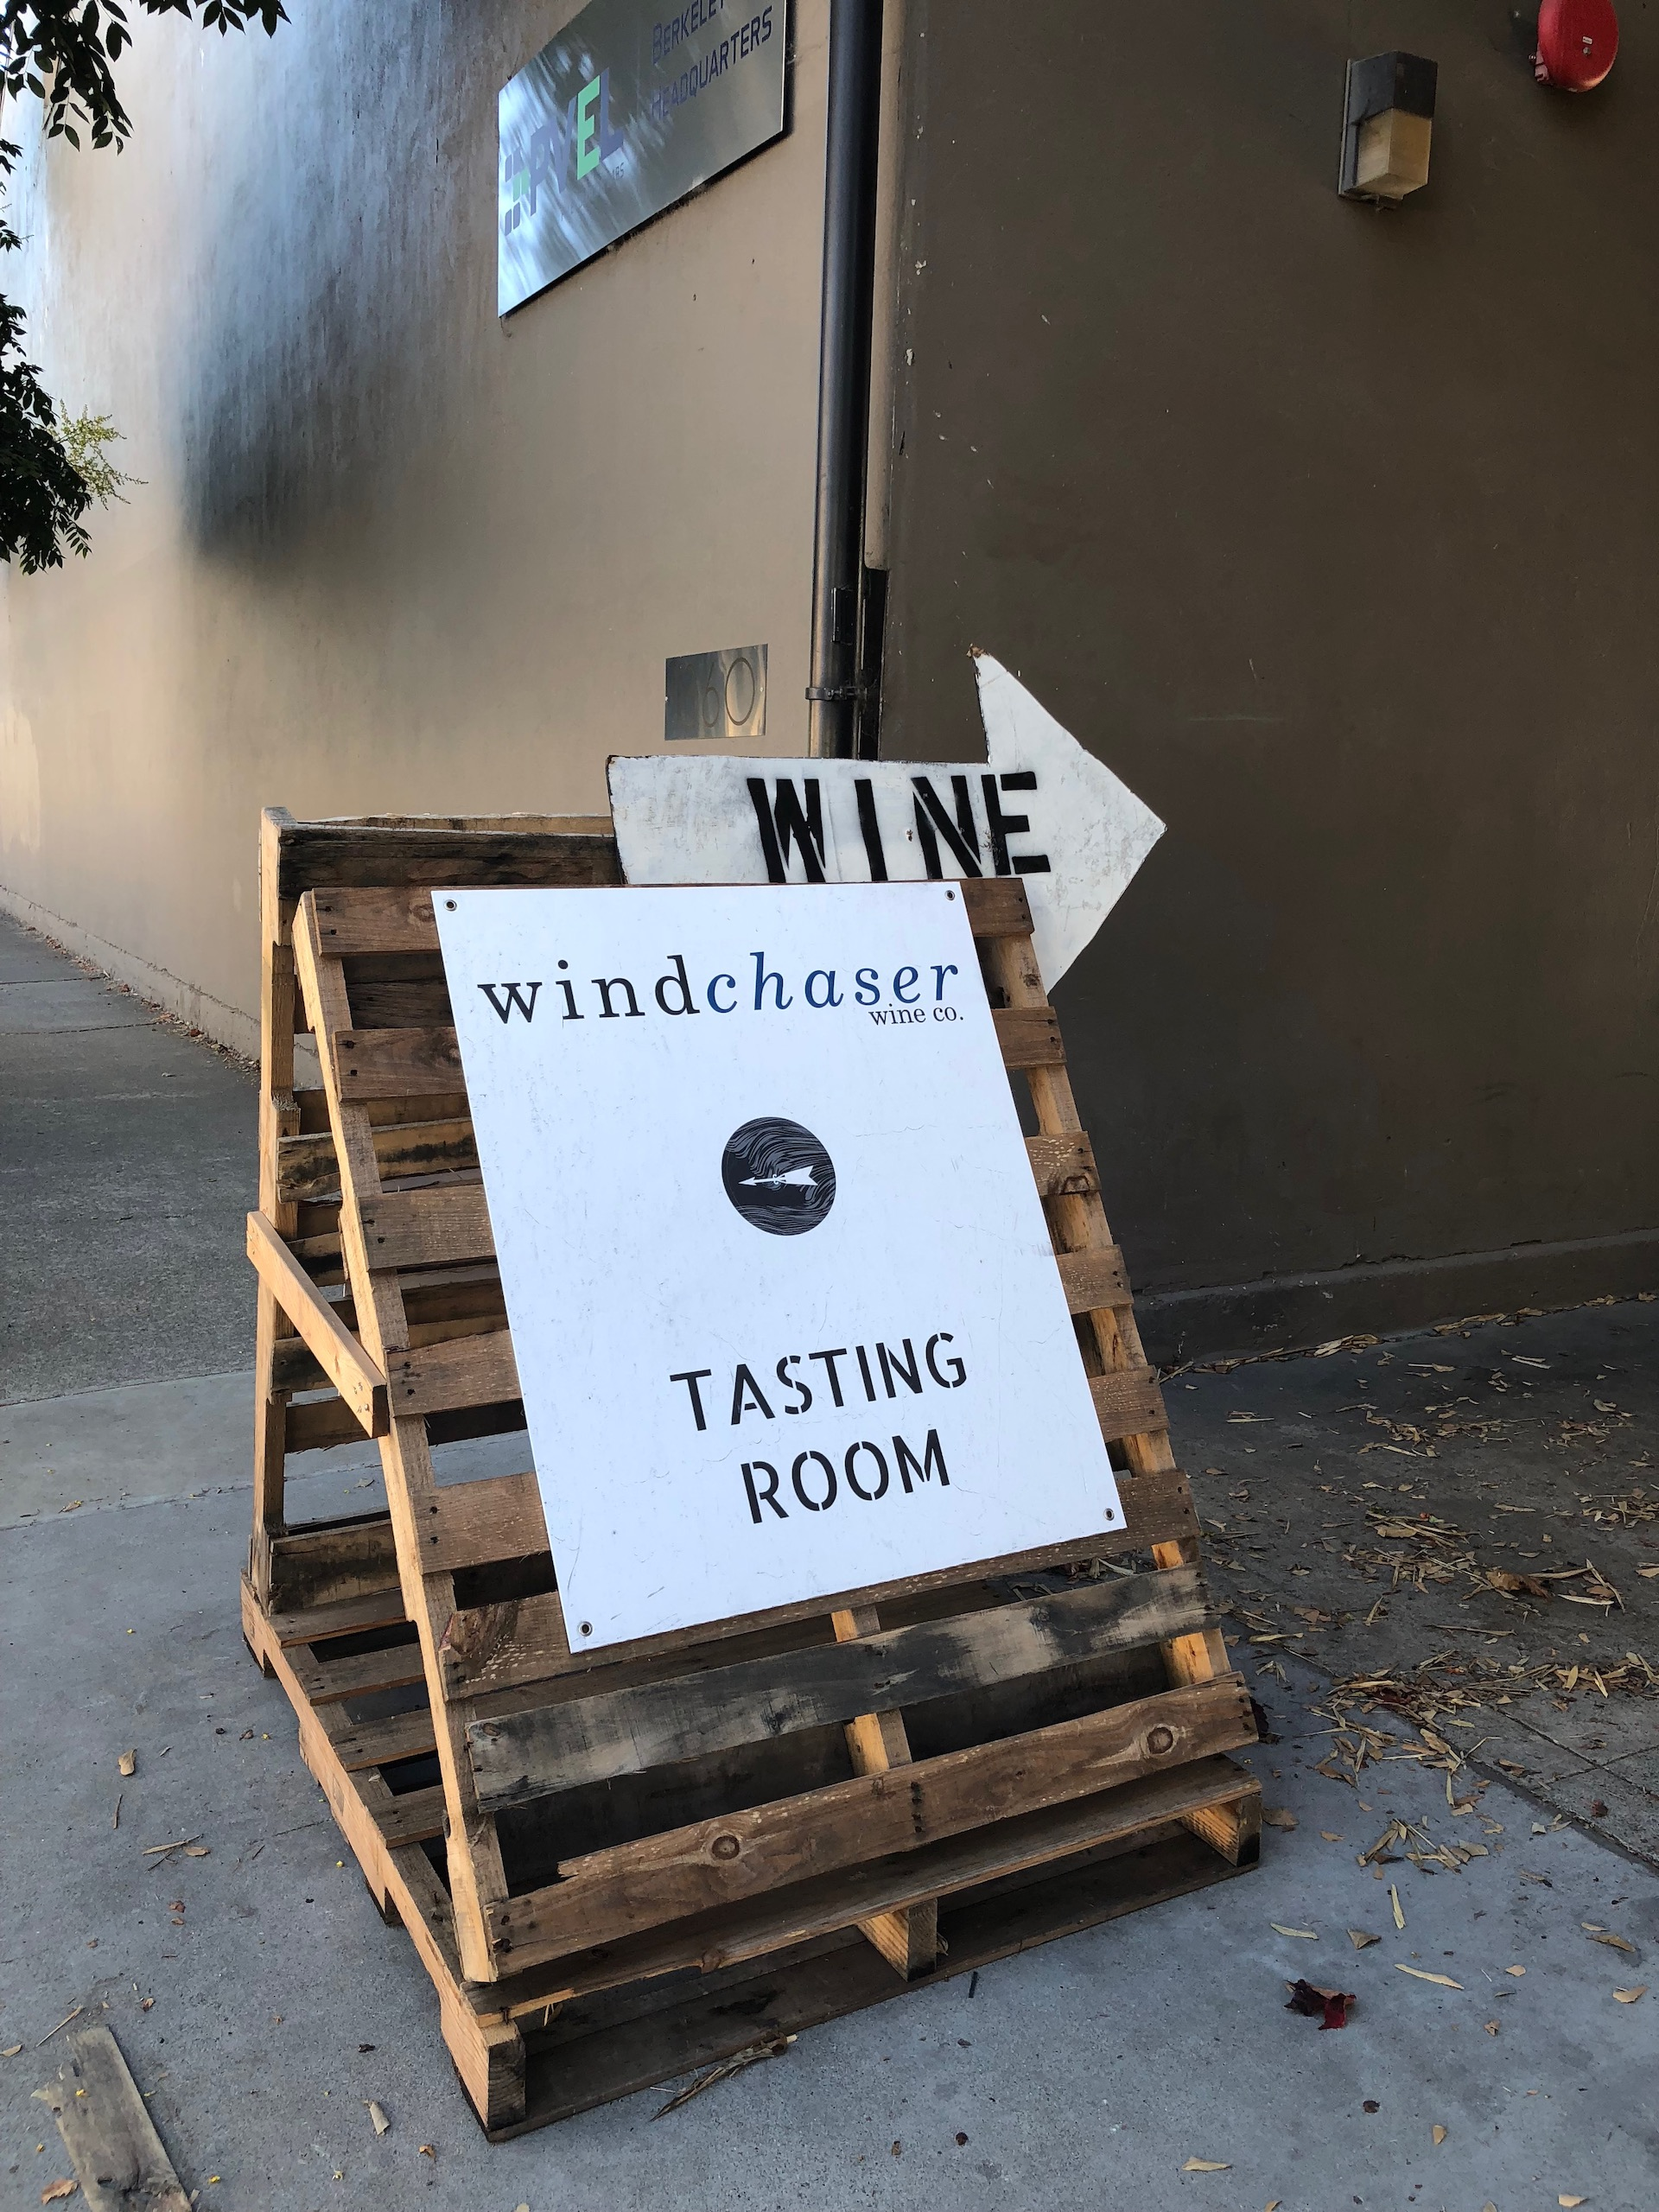 The wind blows wine tasters to some of the best urban winery wines at Windchaser in Berkeley